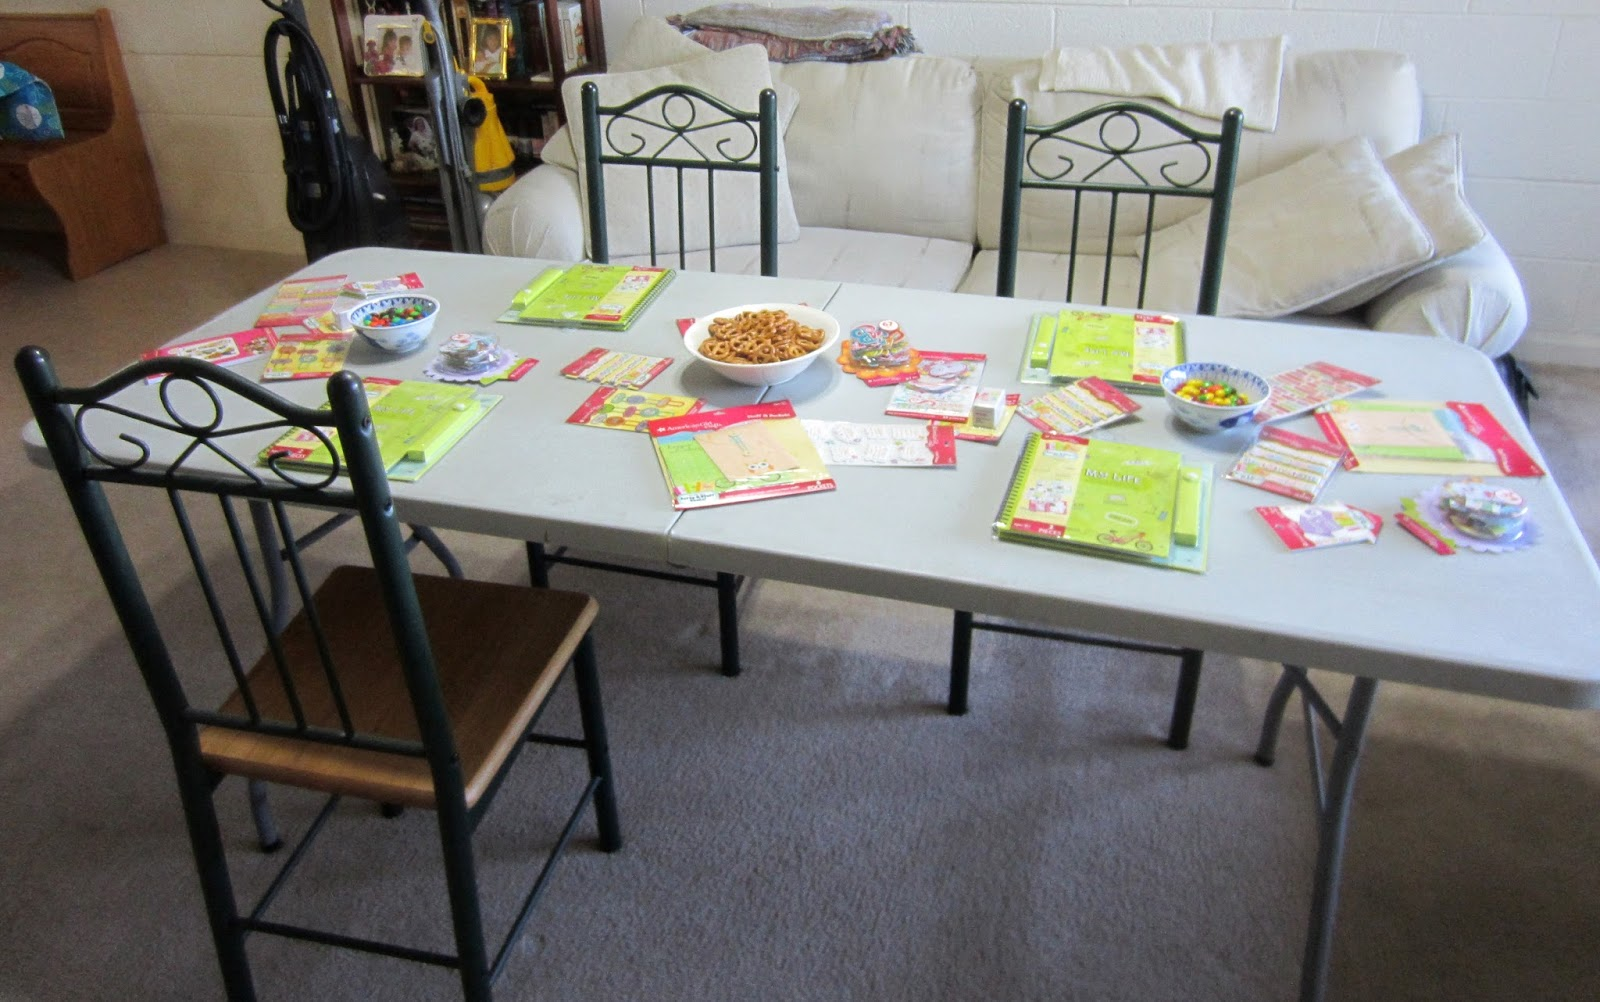 Girl scout scrapbook ideas - This Time Houseparty Sent Us 12 Of The My Life Scrapbooks Along With A Plethora Of Embellishments For The Girls To Decorate Them With